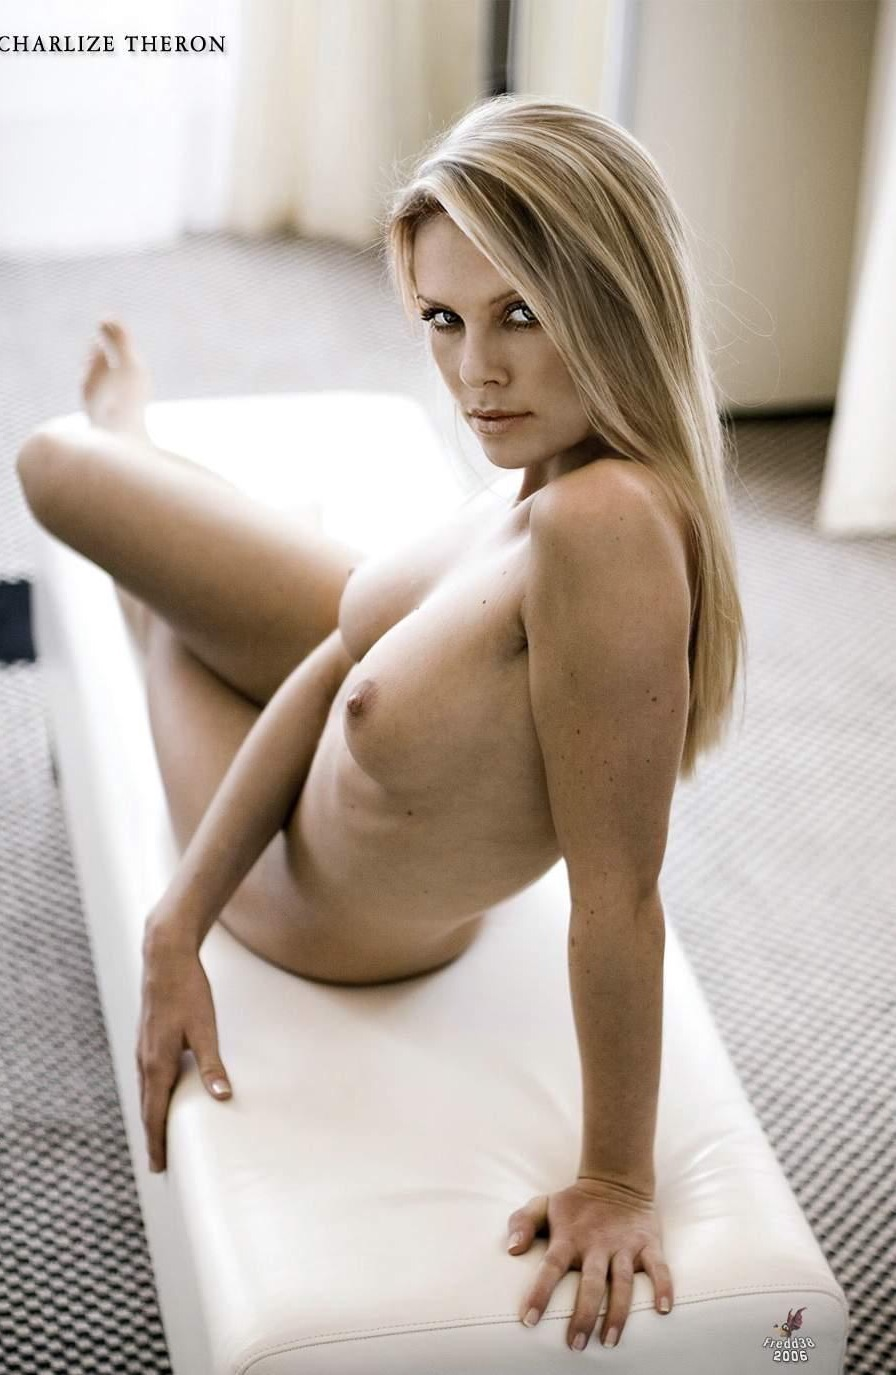 from Vihaan charlize theron playboy photos